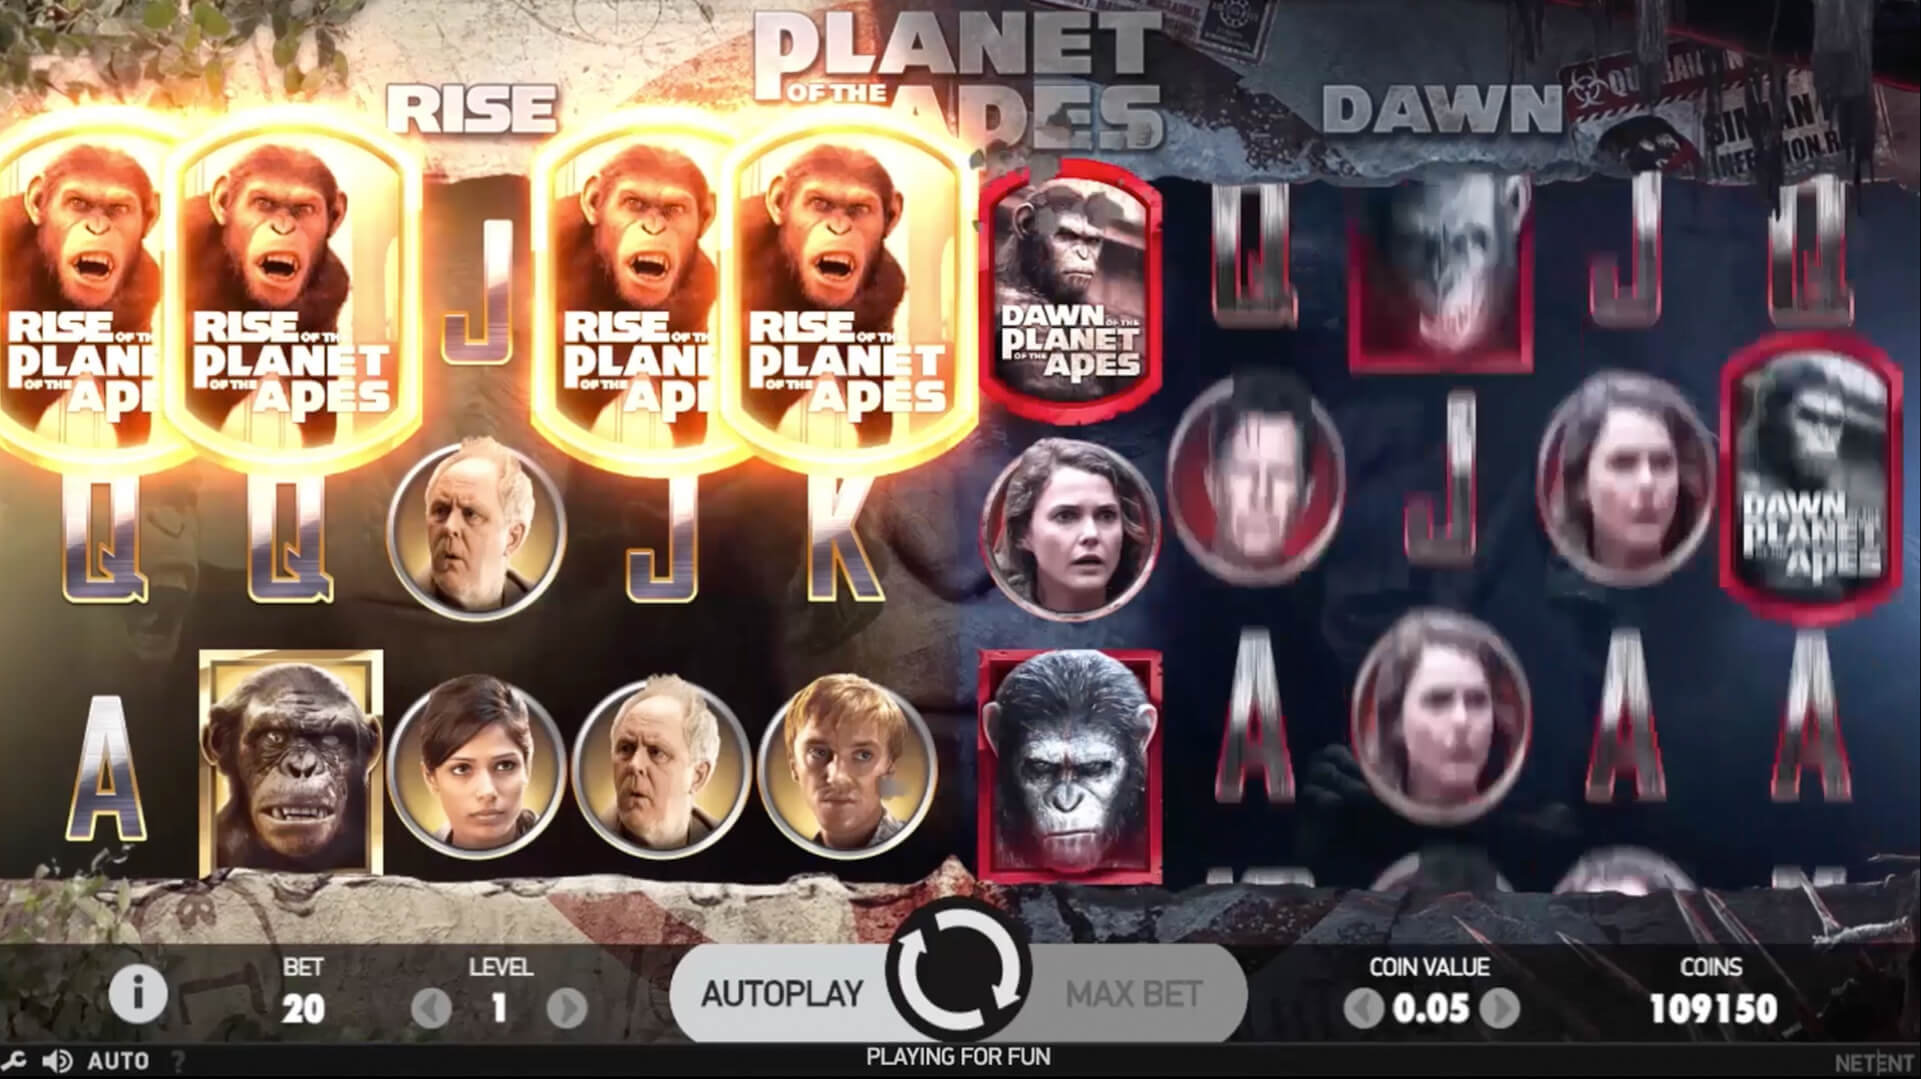 the planet of the apes slot